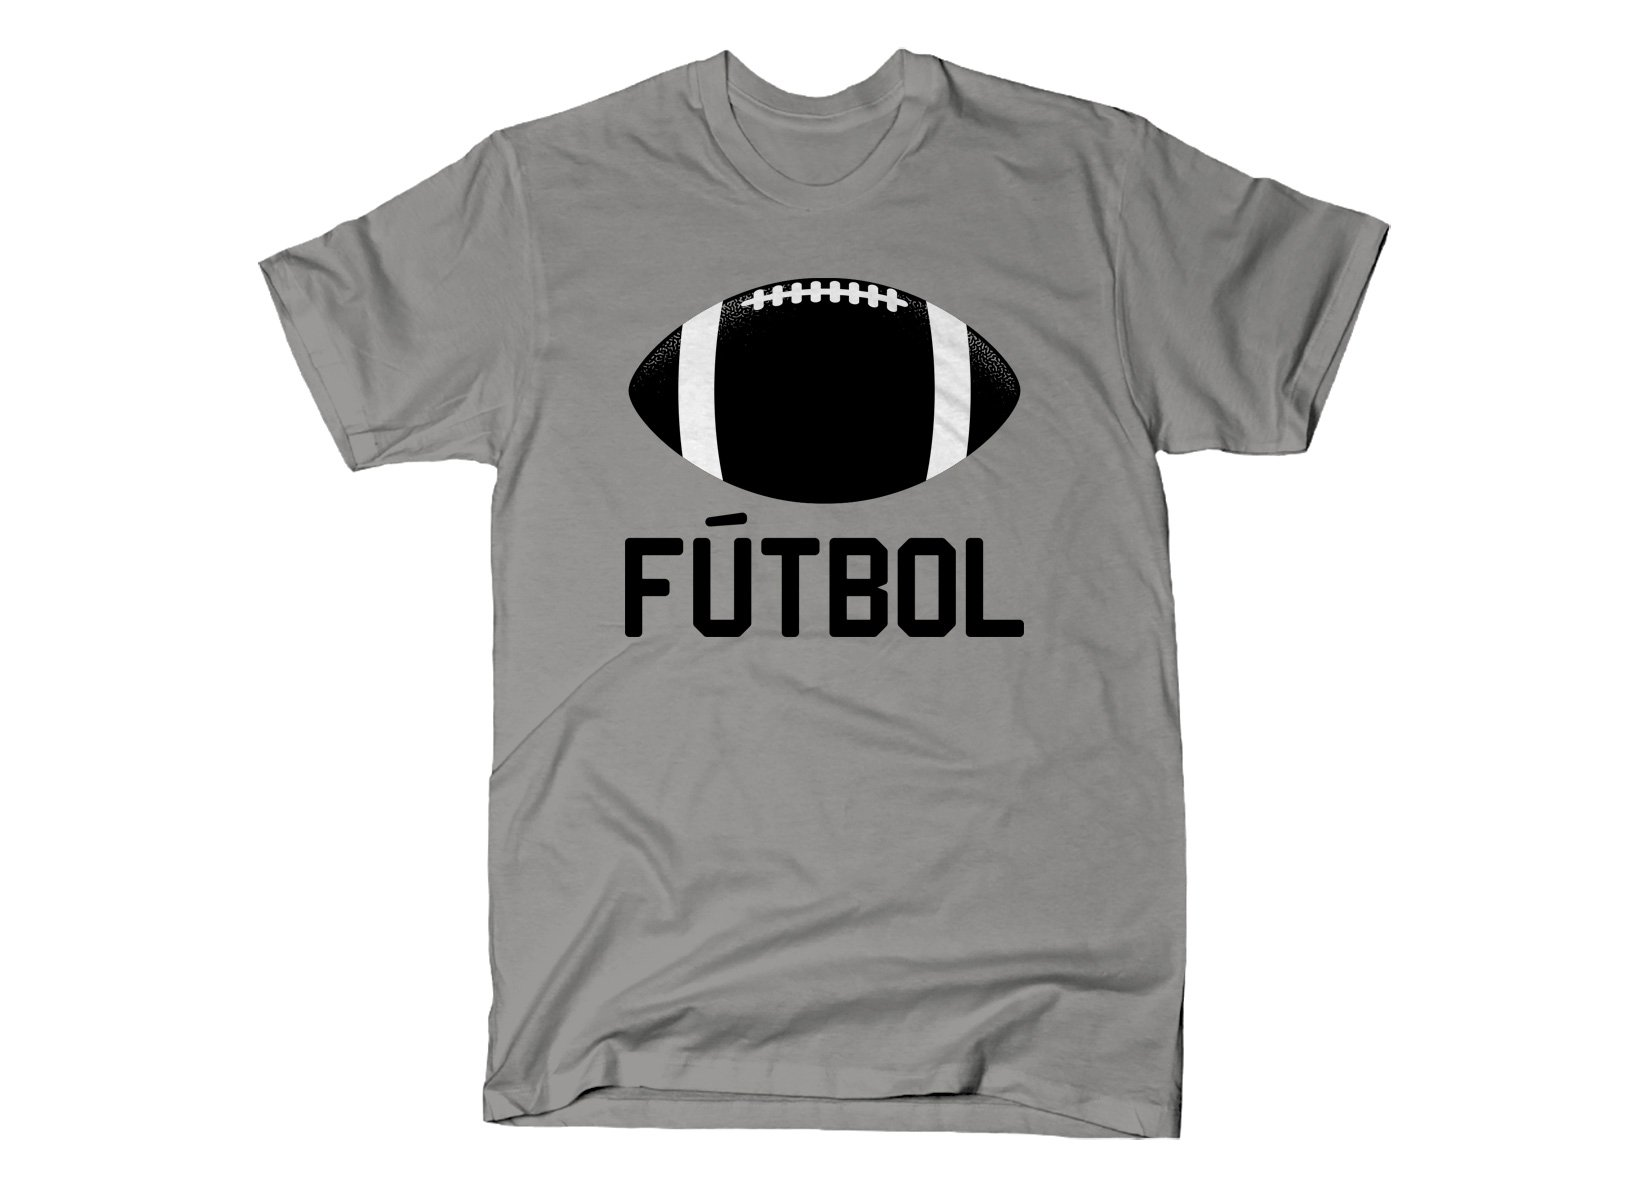 Futbol on Mens T-Shirt